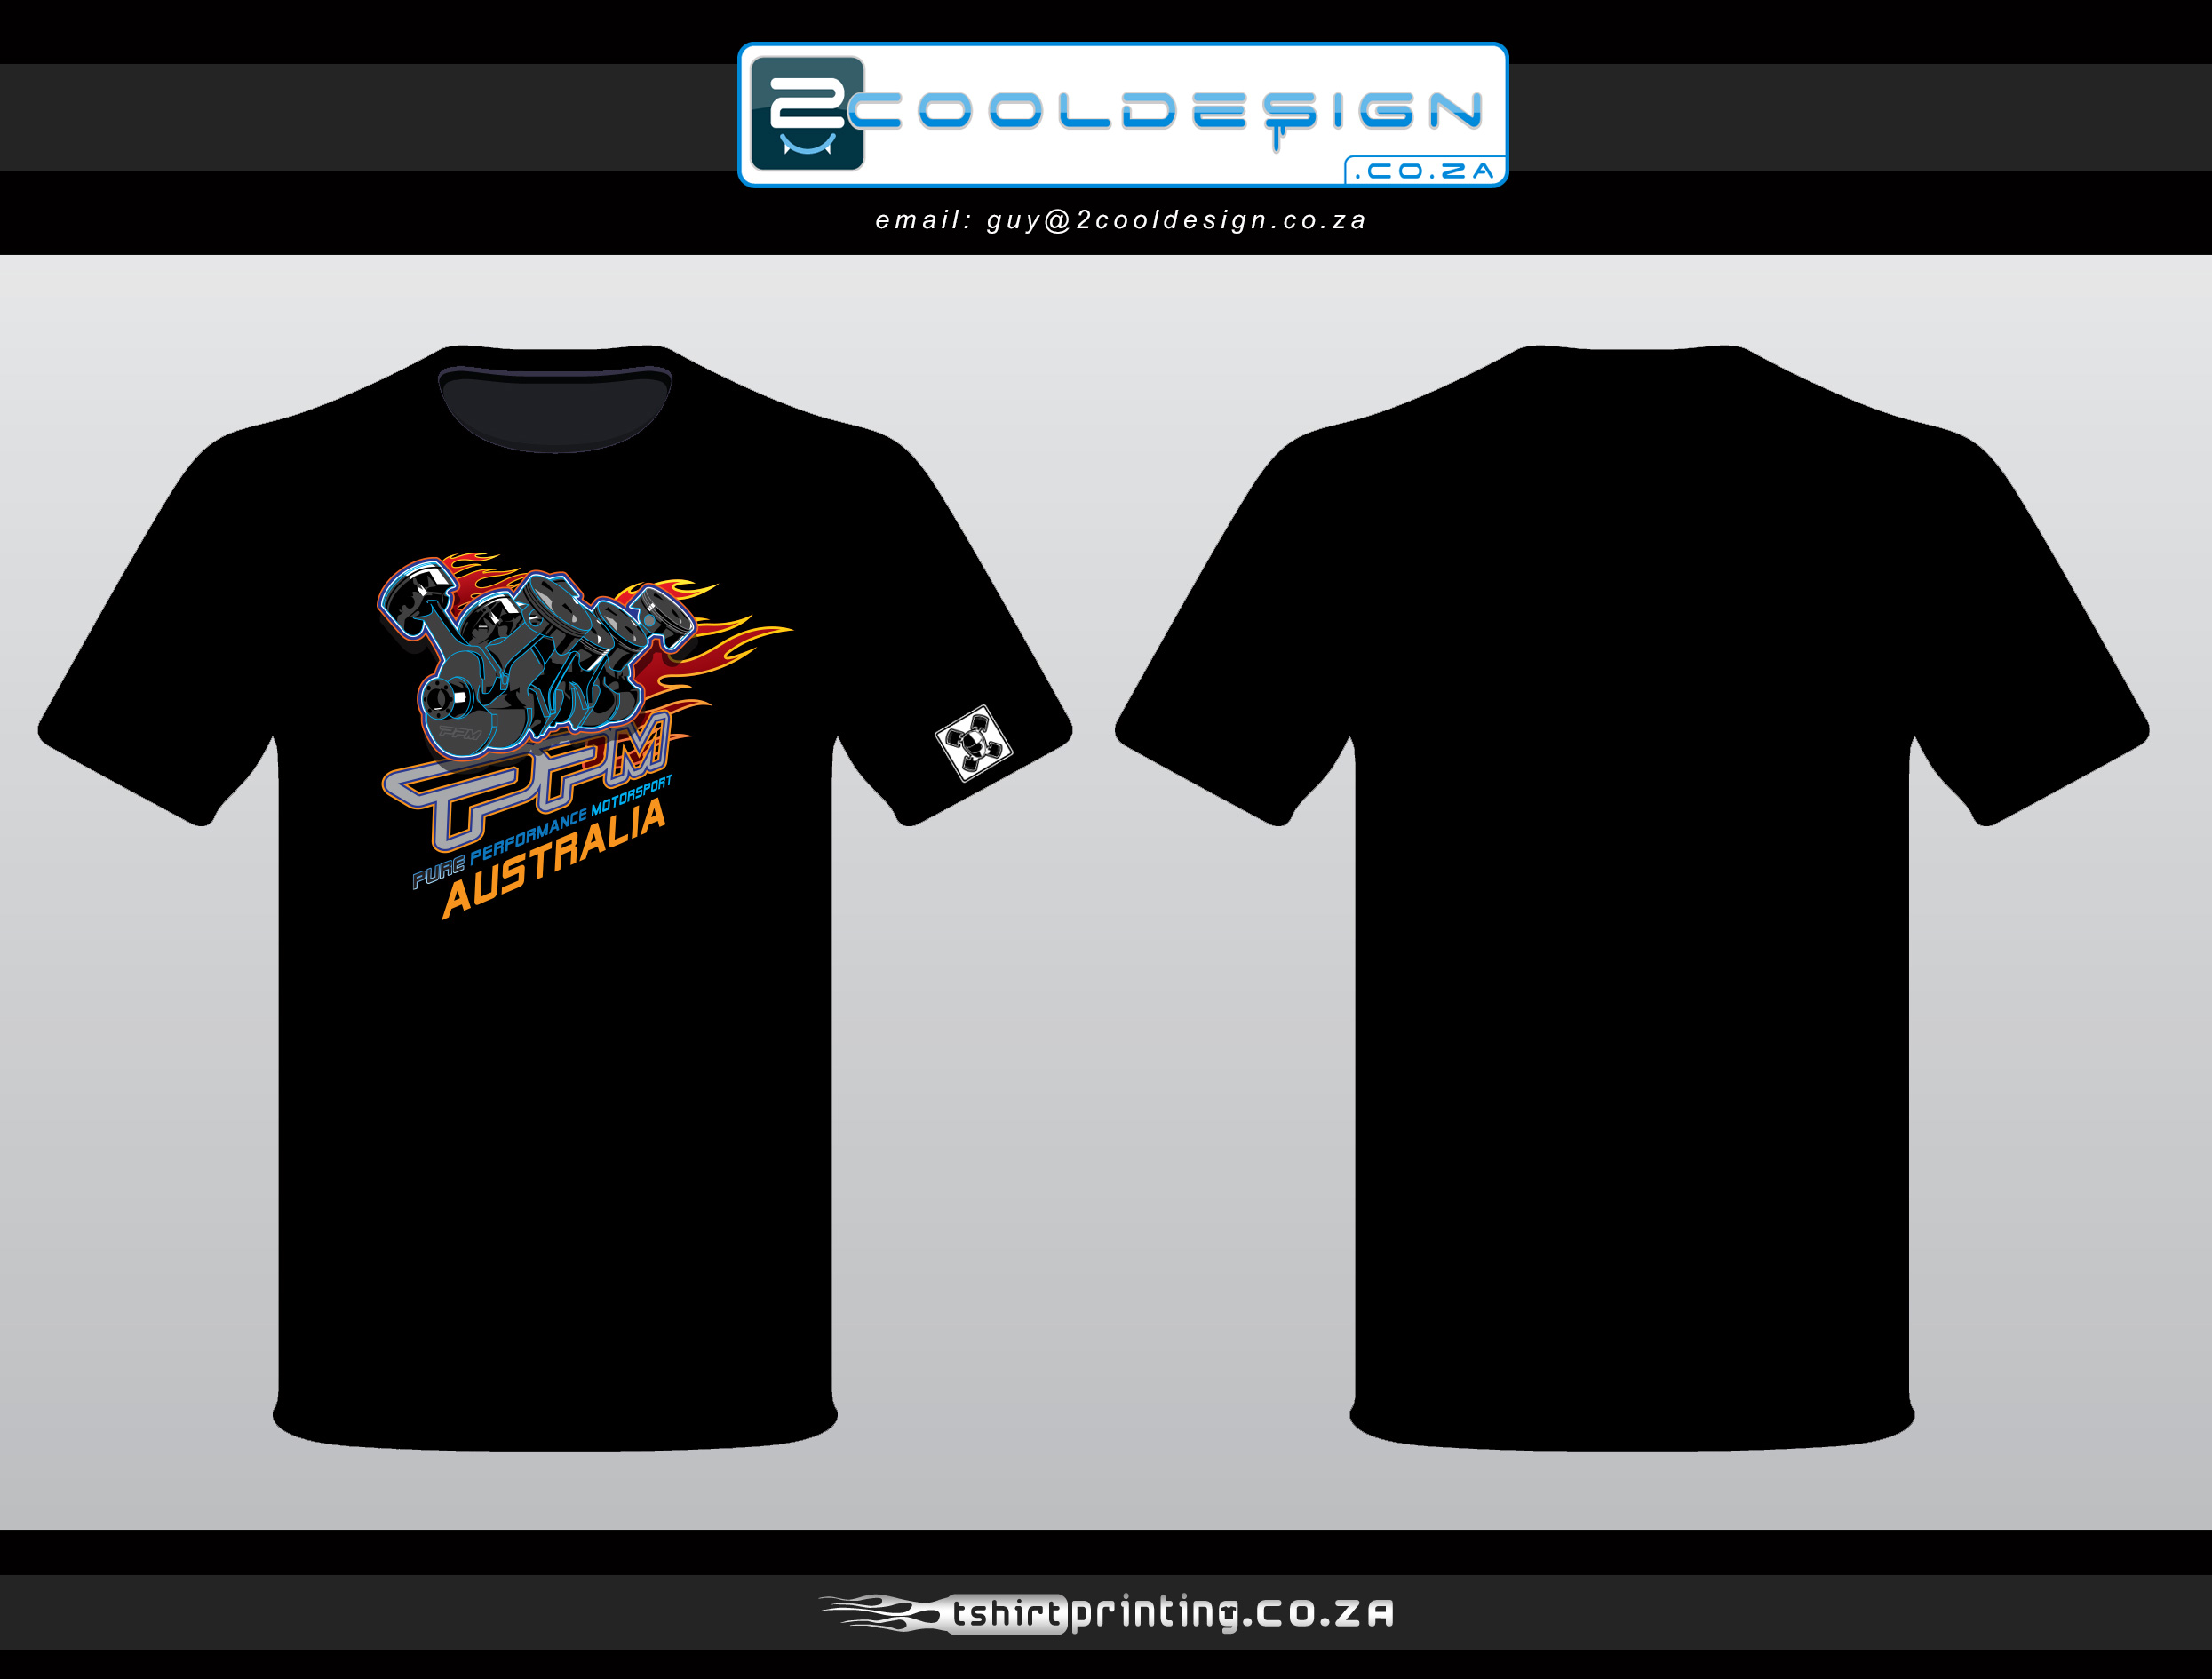 Design t shirt brand - V8 Motor Piston Tshirt Design For Ppm Racing V8 Tshirt